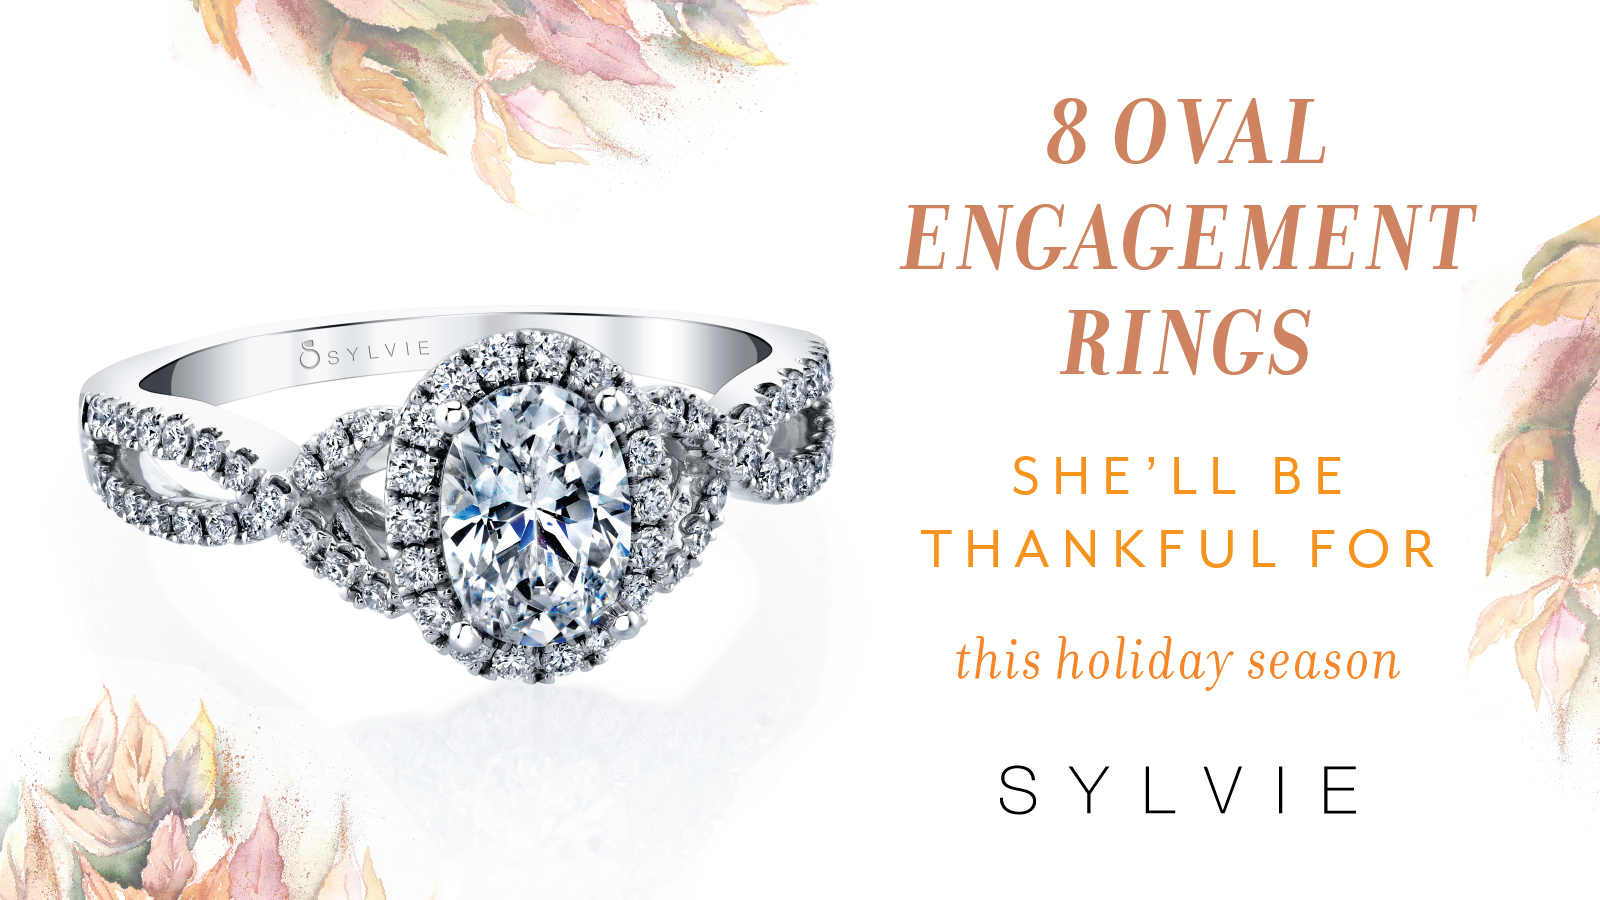 8 Oval Engagement Rings she'll be thankful for this holiday season